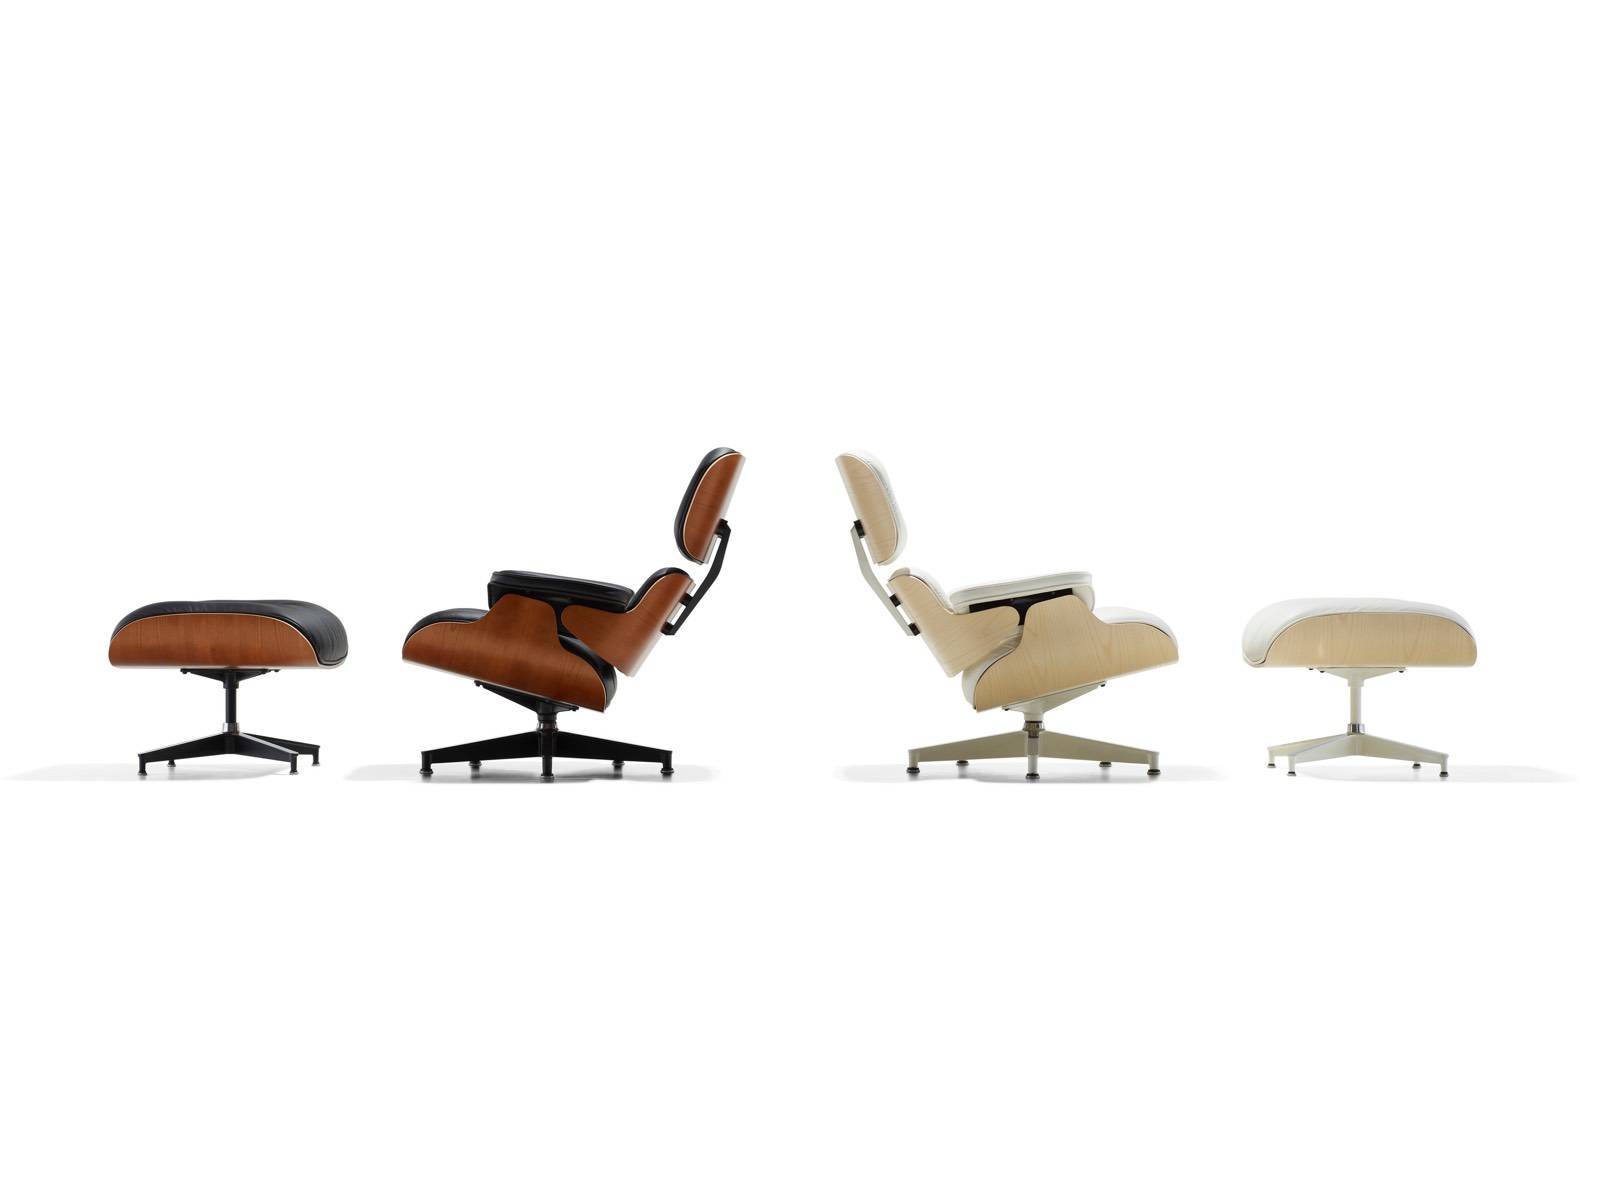 A Black Leather Eames Lounge Chair And Ottoman And A White Leather Eames  Lounge Chair And